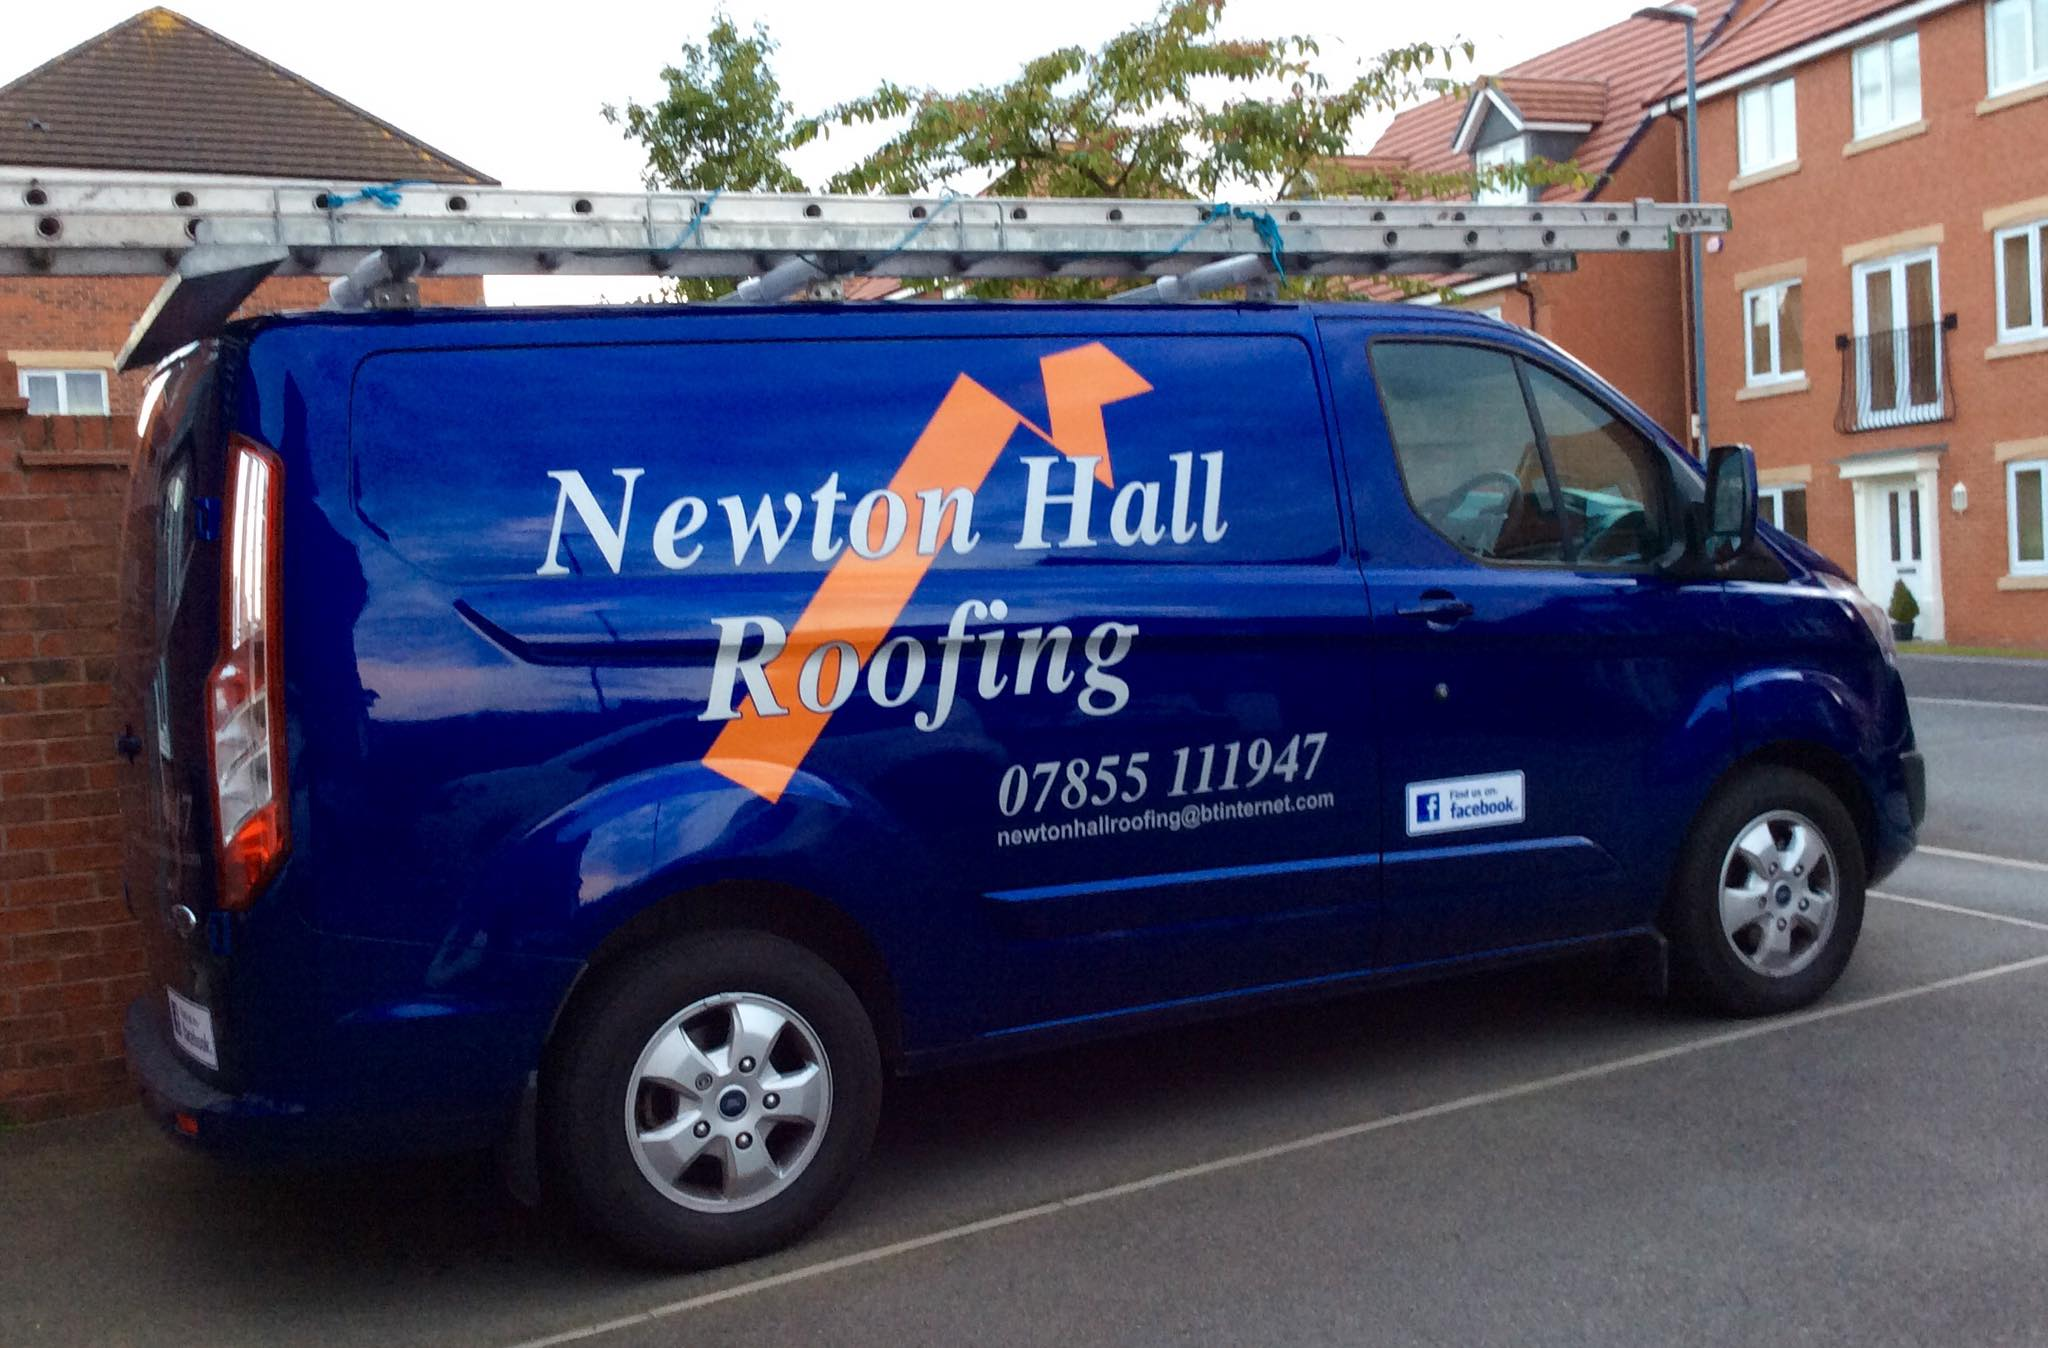 MR K W LAURIE T/AS NEWTON HALL ROOFING